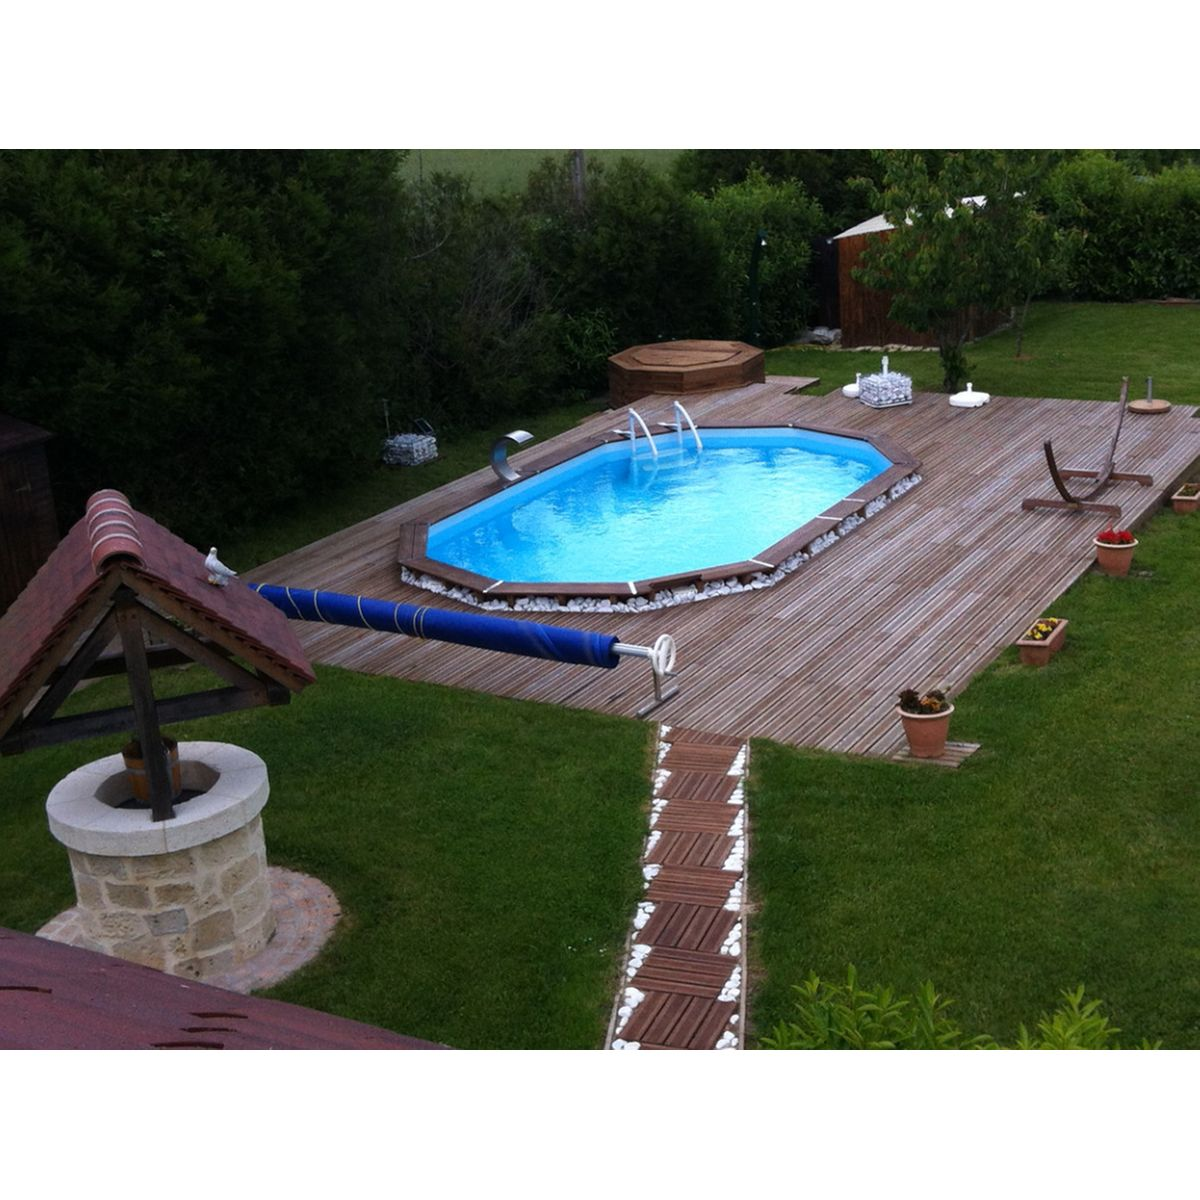 Piscine hors sol bois topiwall for Sevylor piscine hors sol